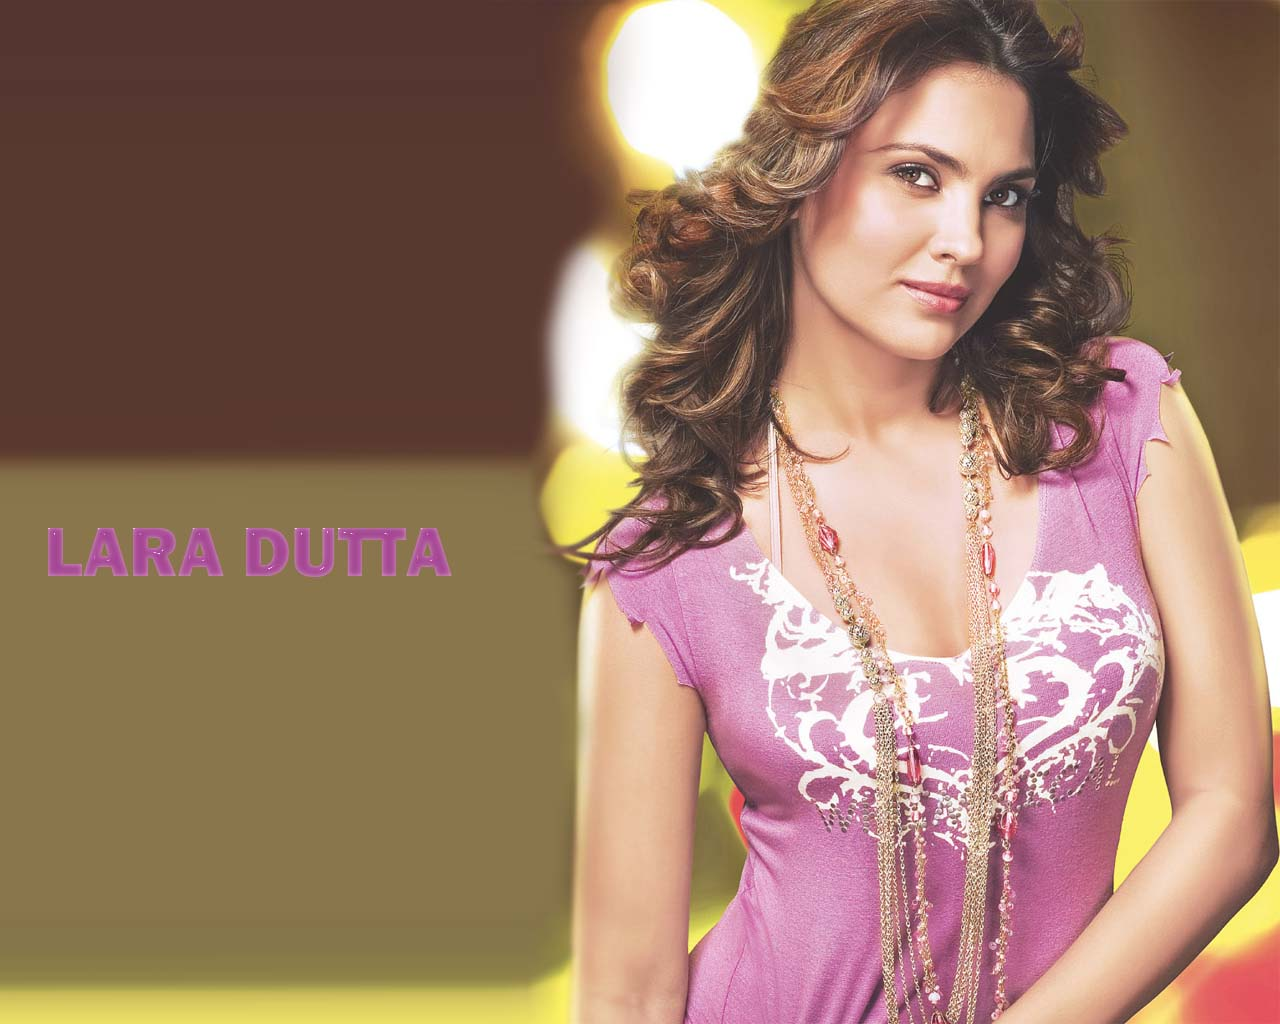 lara dutta movies - photo #23